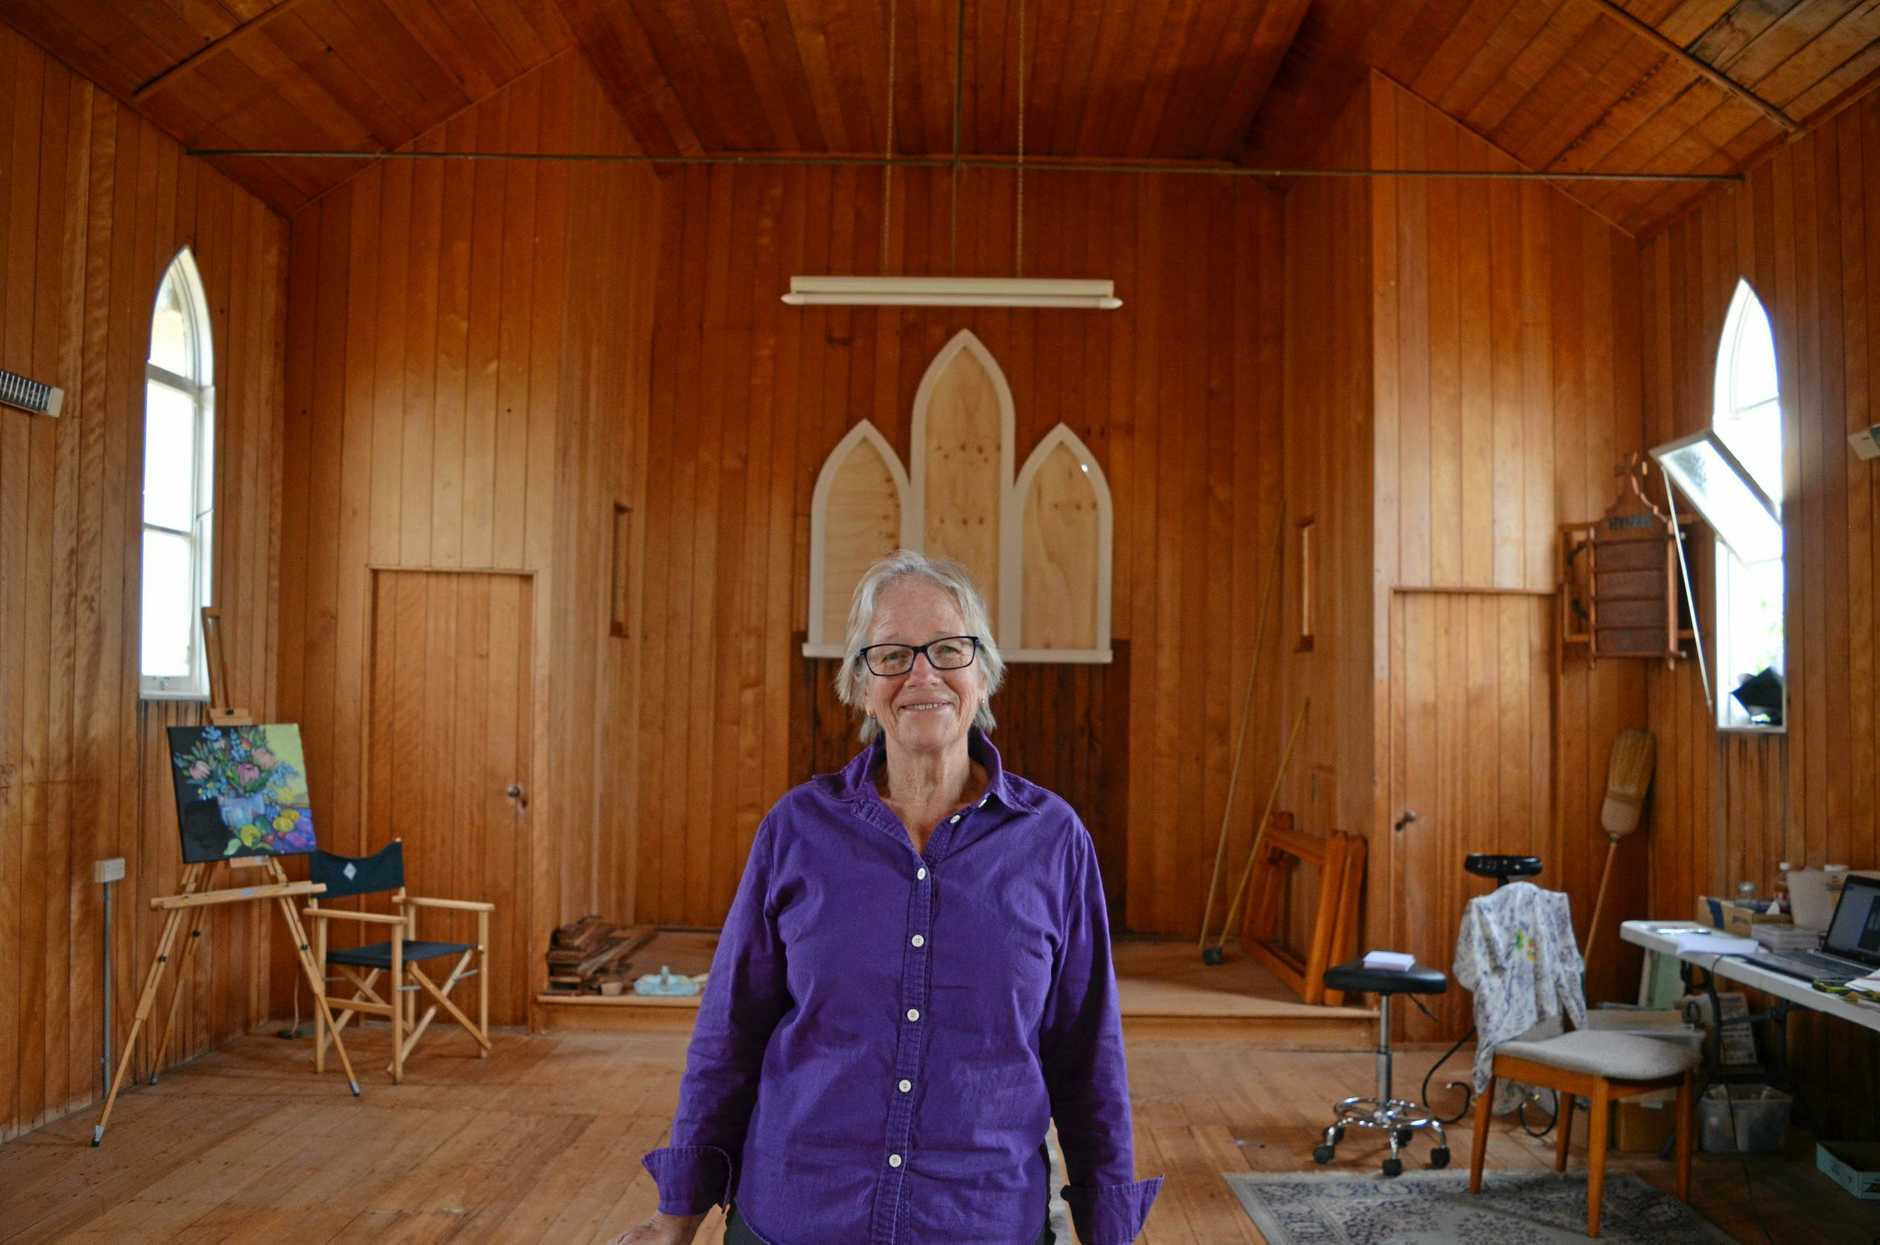 Sue Keong purchased the Freestone St Luke's Anglican Church and has plans to convert it to an artist's retreat.